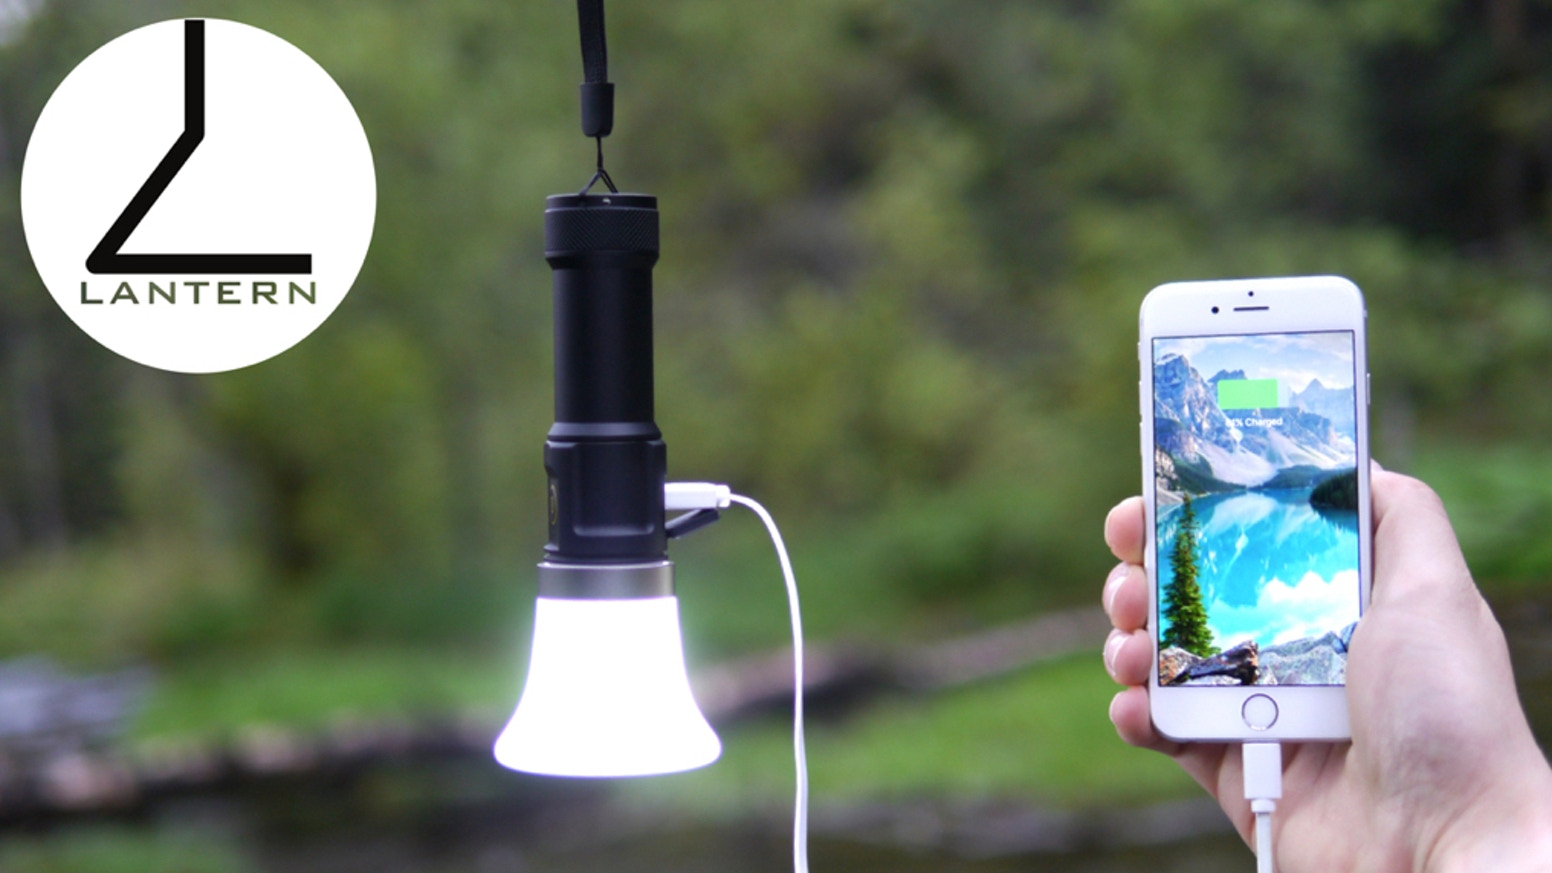 1000 lumen USB rechargeable lantern flashlight with 4000mAh USB battery backup and 360 bike mount. Charge any device. We want to extend the Kickstarter community 20% off any of our products. Use promo code KICKSTARTER20 at checkout.